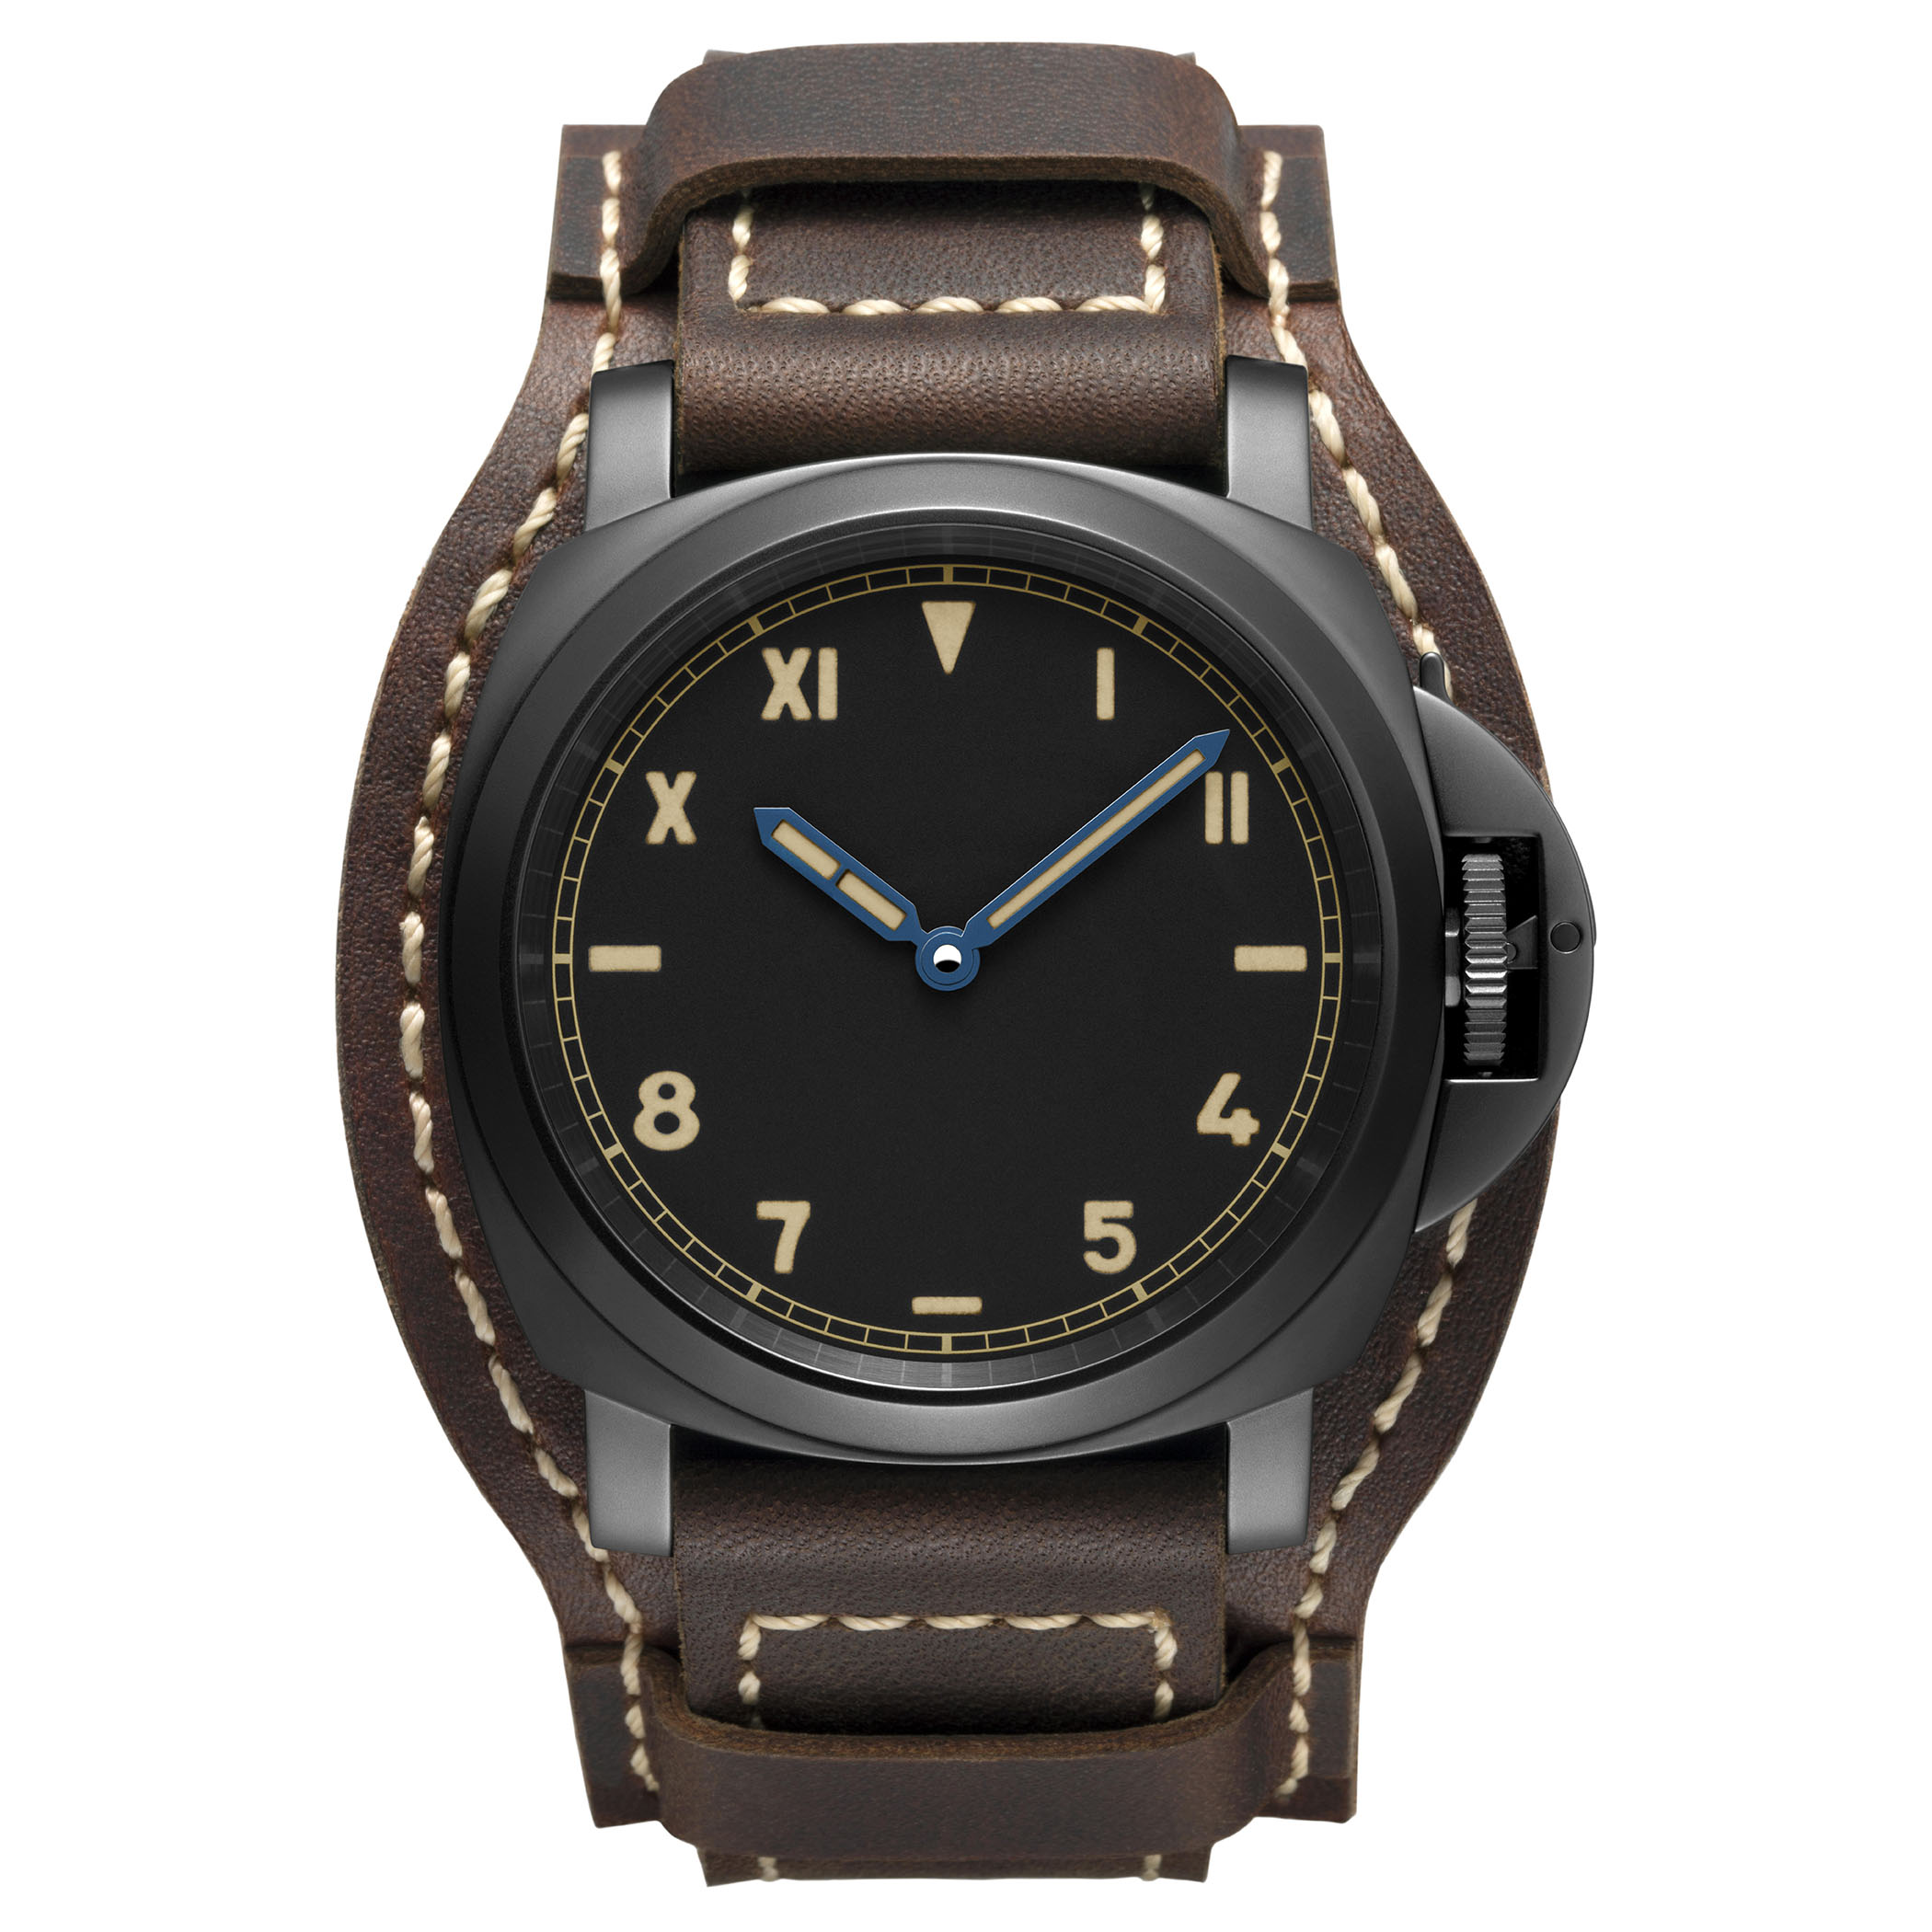 Panerai Luminor California 8 Days DLC 44mm PAM00779